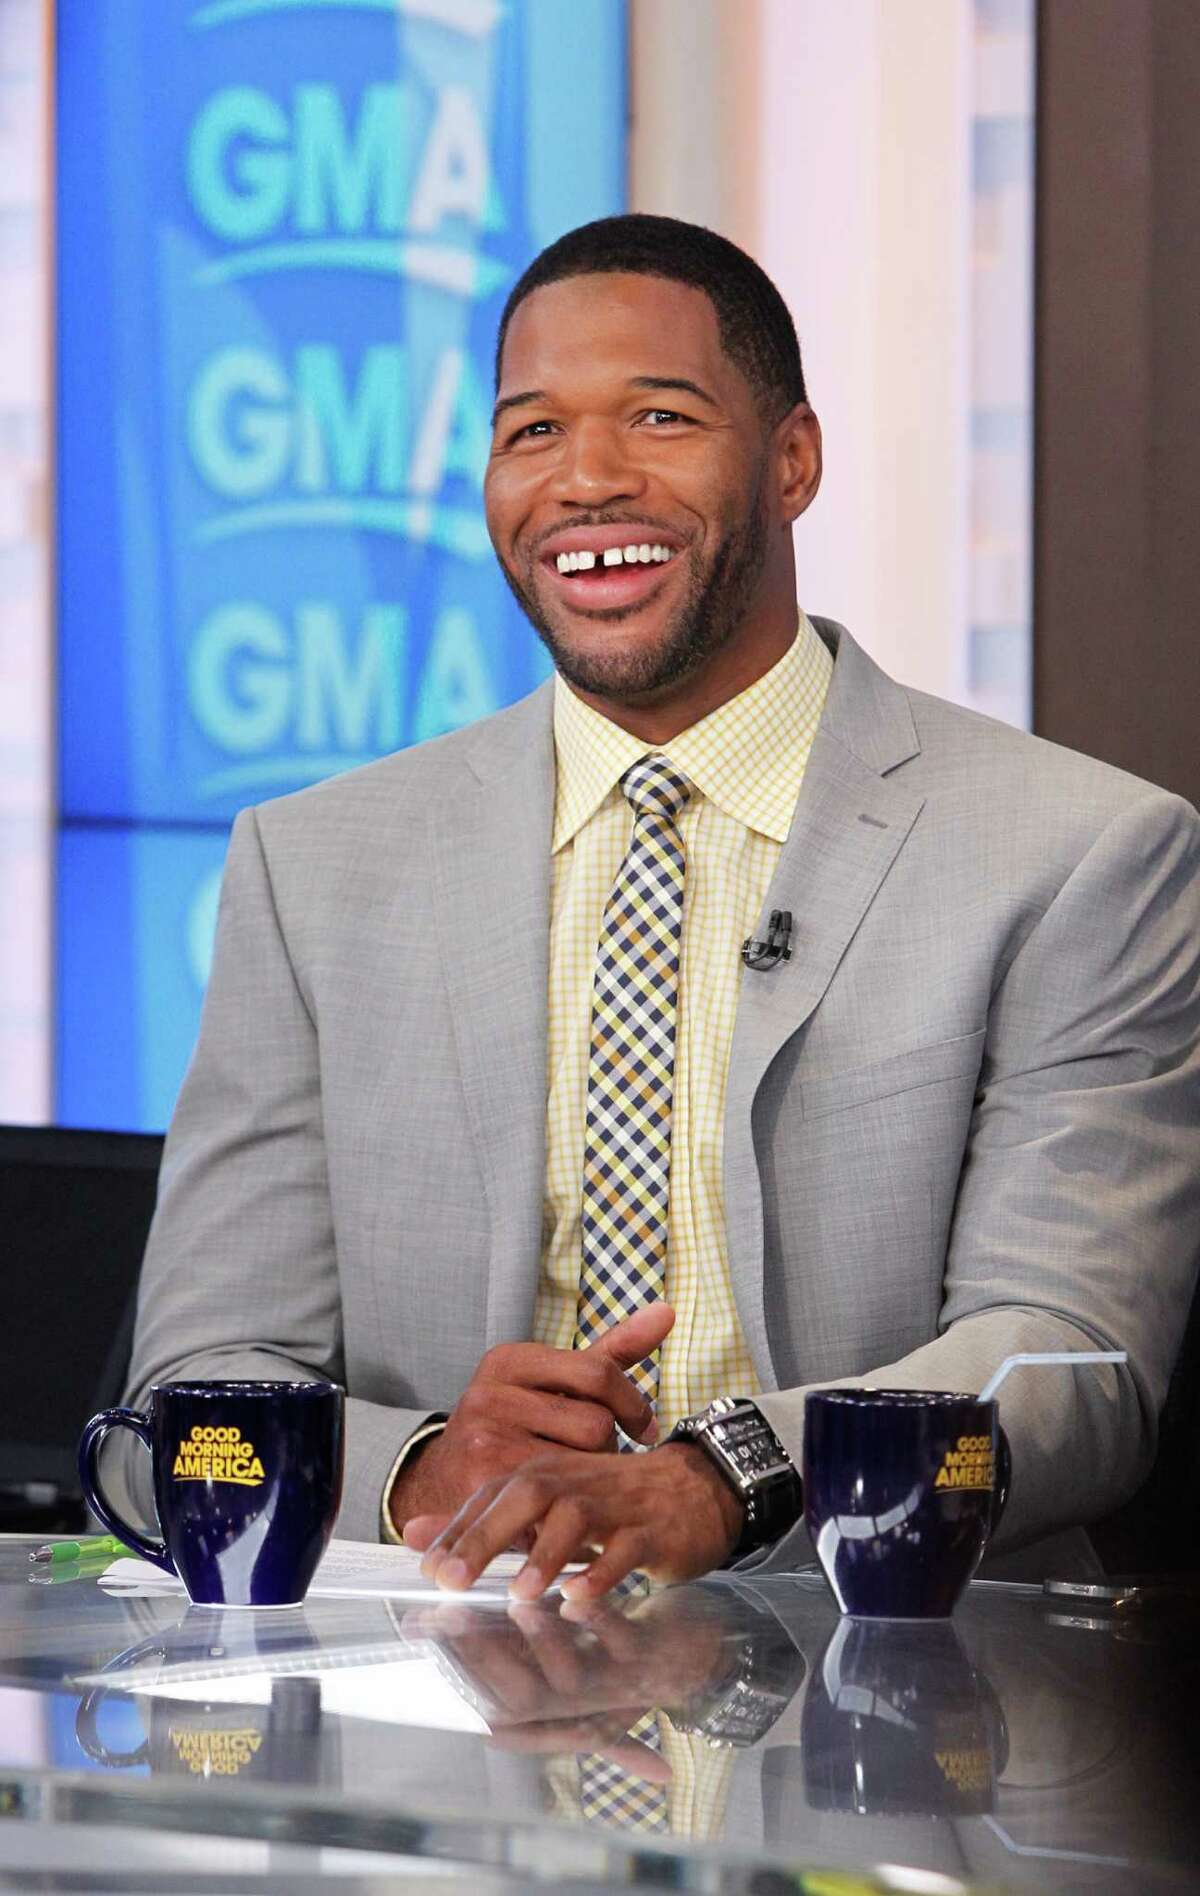 """Michael Strahan, NFL The Westbury and Texas Southern alum went out on top with the Giants, winning the Super Bowl in his final game. He's gone on to TV stardom as a Fox NFL analyst, the co-host of """"Live with Kelly and Michael"""" until his recent high-profile departure and now a full-time role on """"Good Morning America."""""""